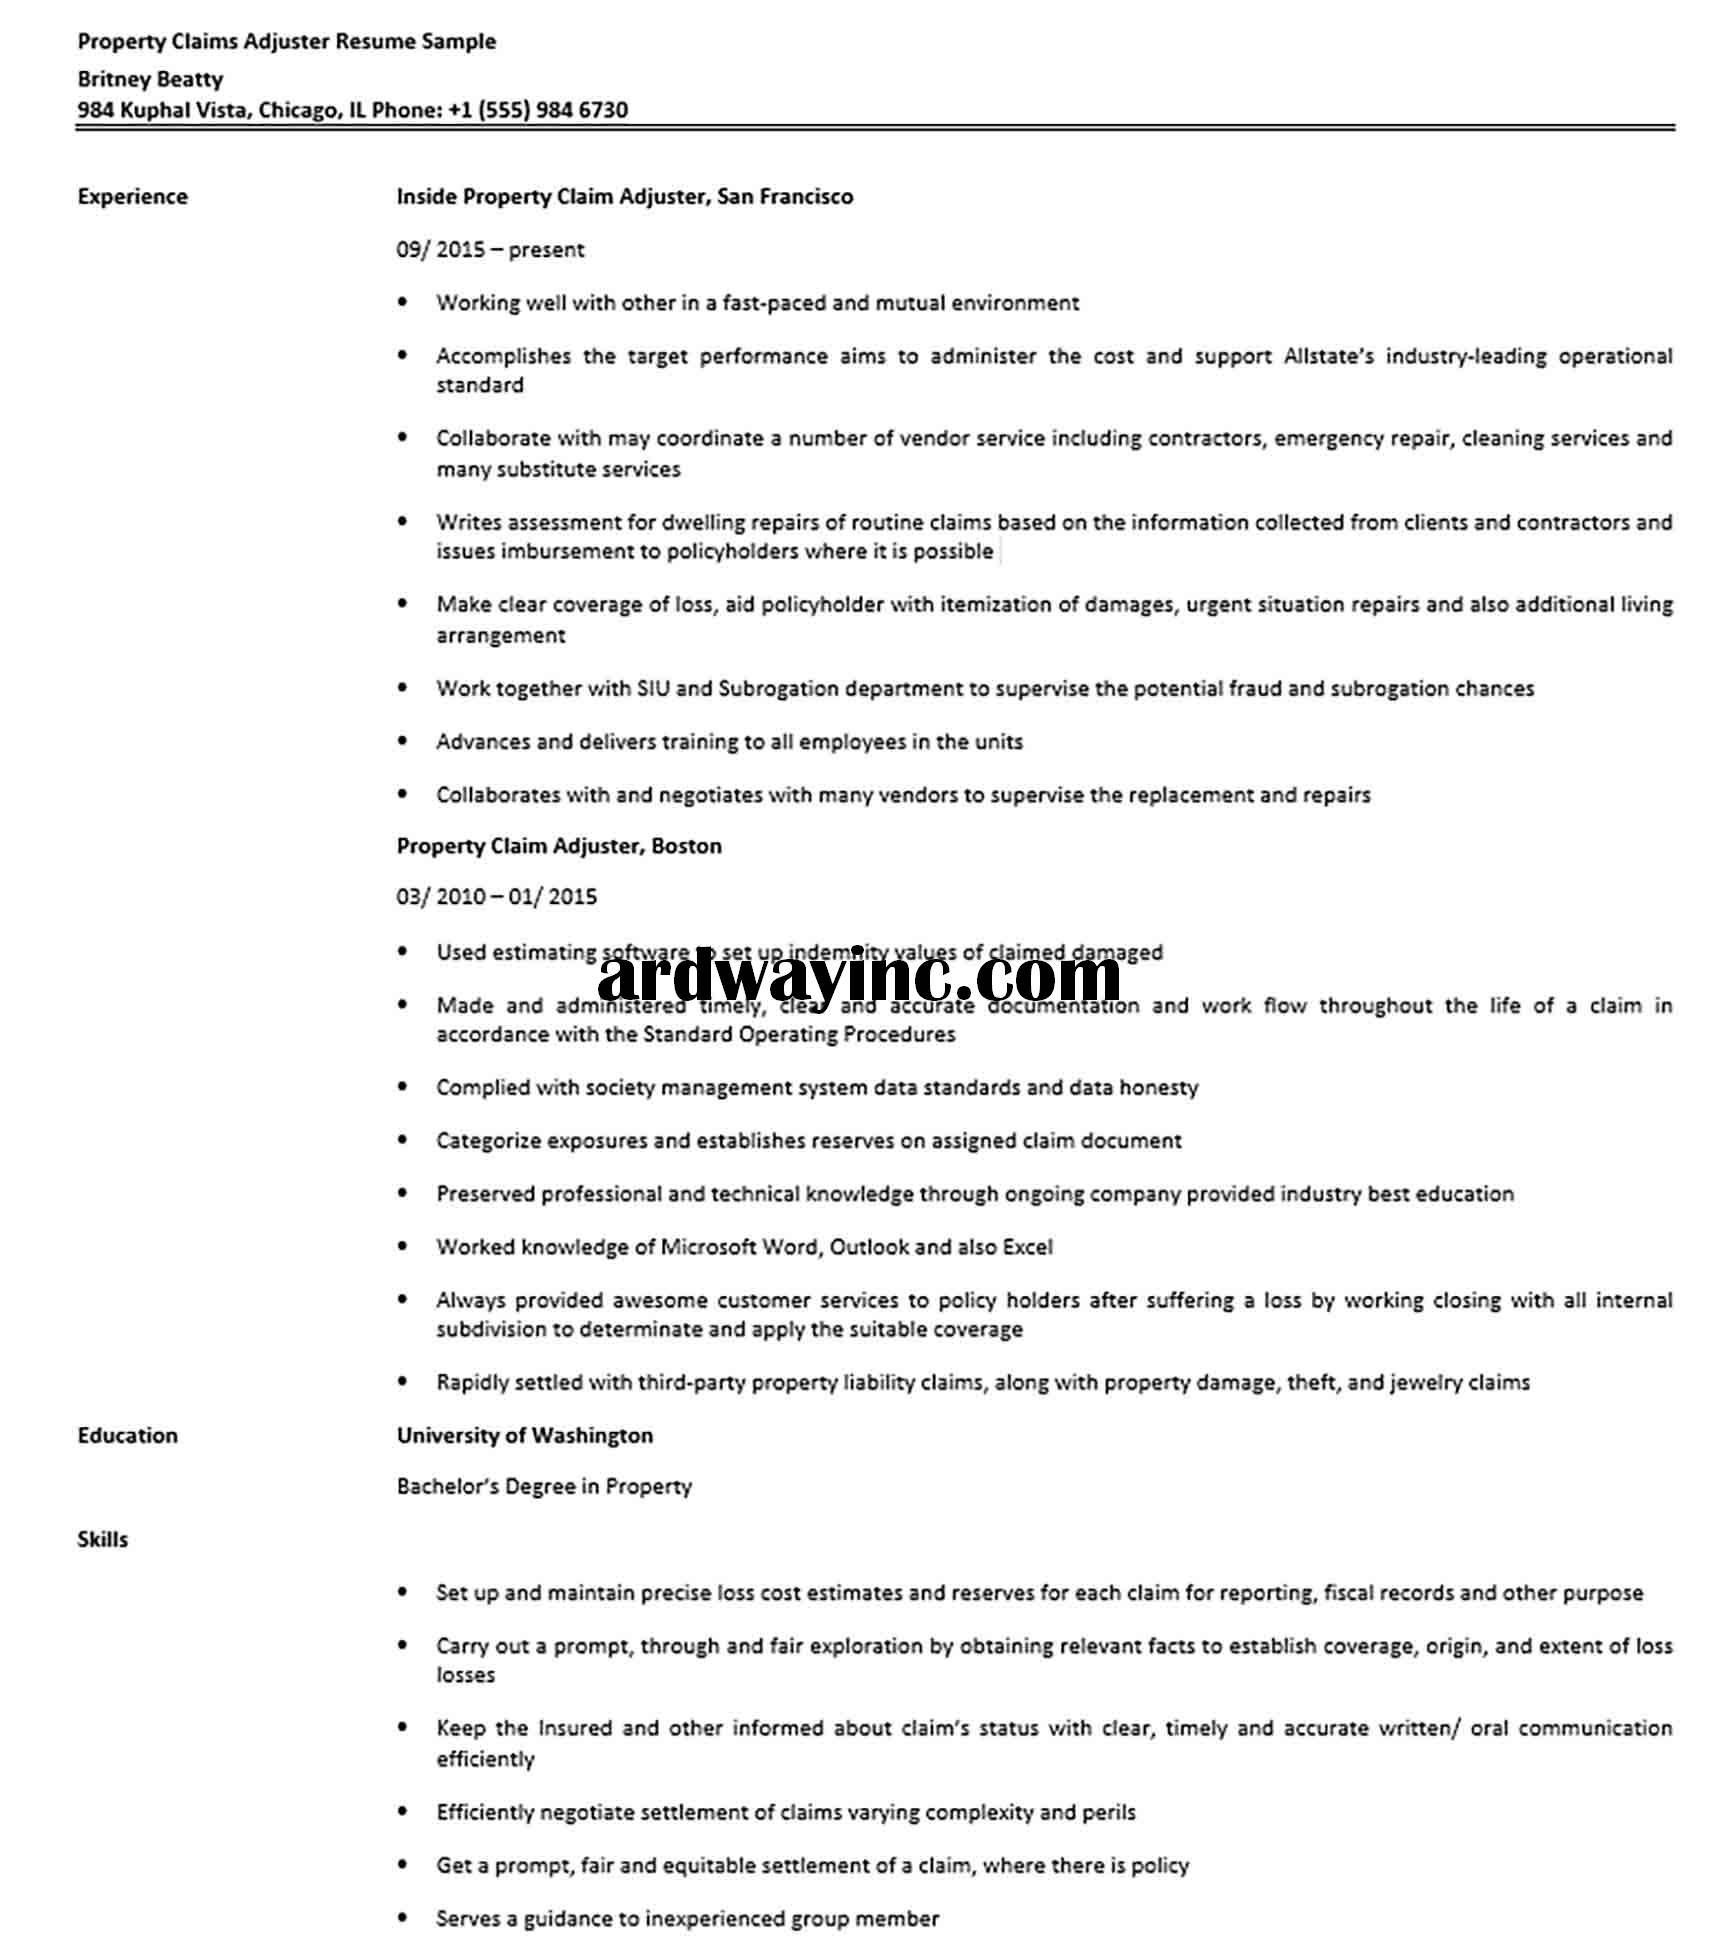 Property Claims Adjuster Resume Sample In 2020 Resume Business Template Interpersonal Skills